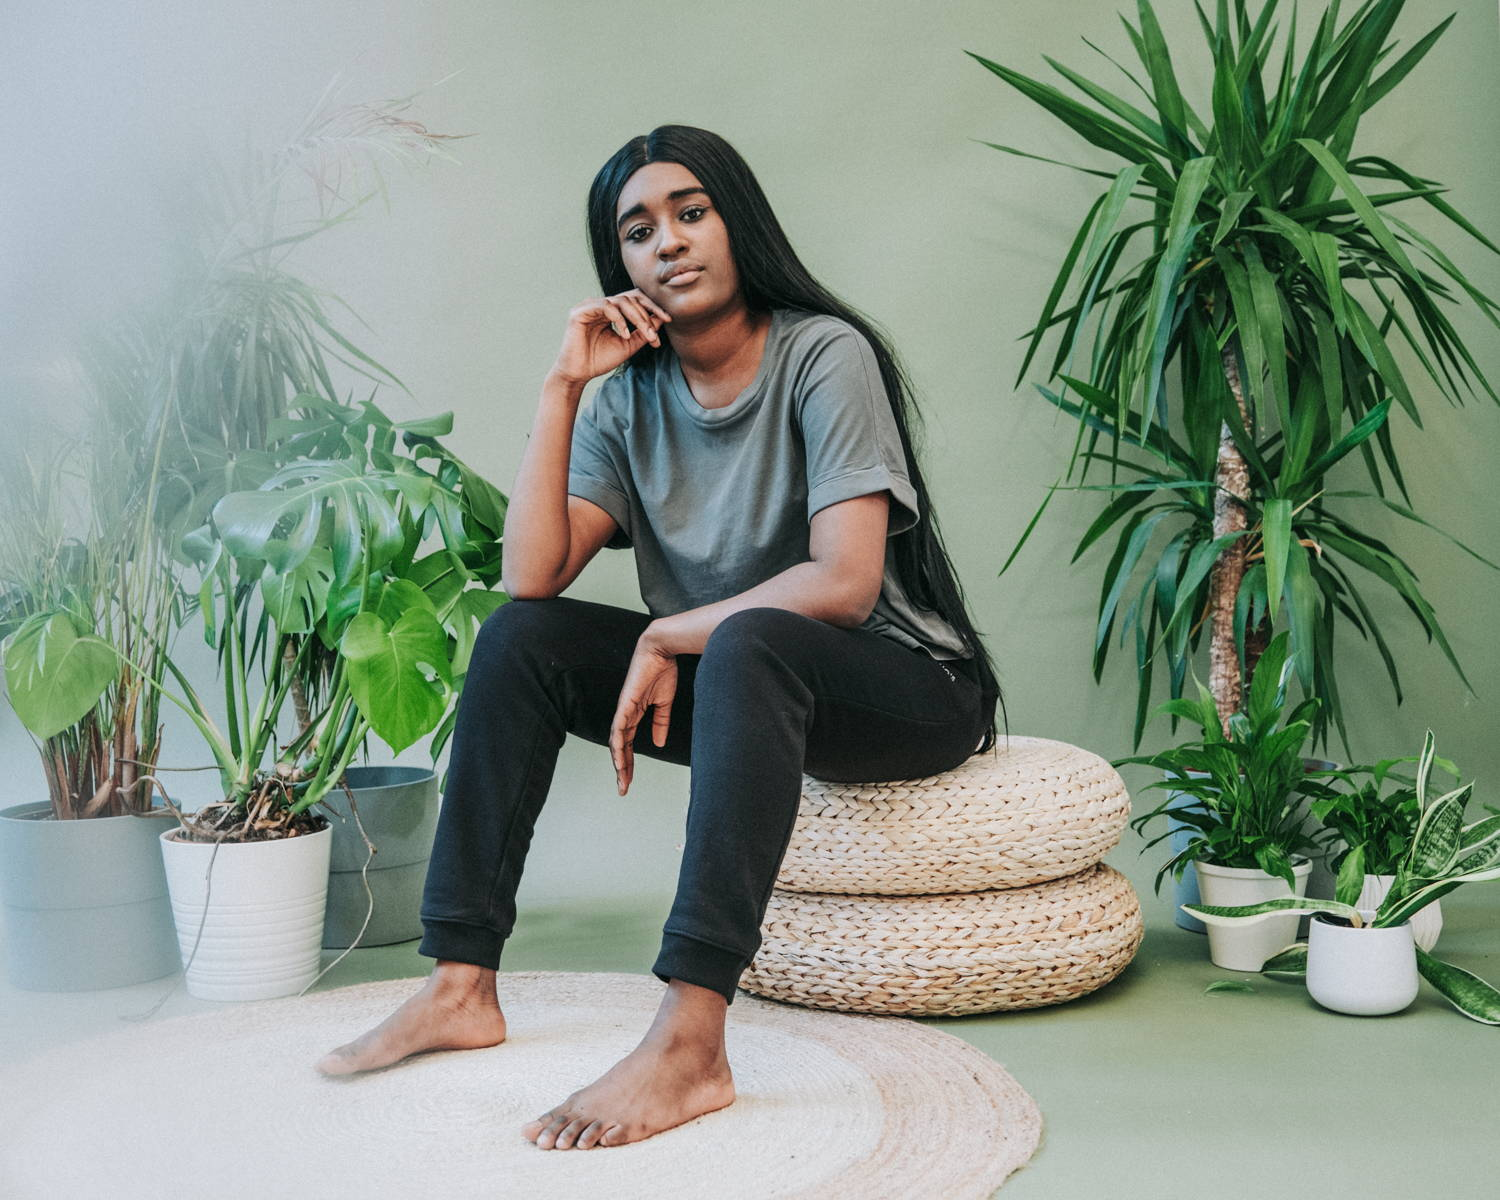 Shop the collection of sustainable and ethically made organic cotton lounge wear, perfect for working from home or lounging on the weekend. Shop the collection now at Sancho's, the home of sustainable fashion in Exeter, UK.